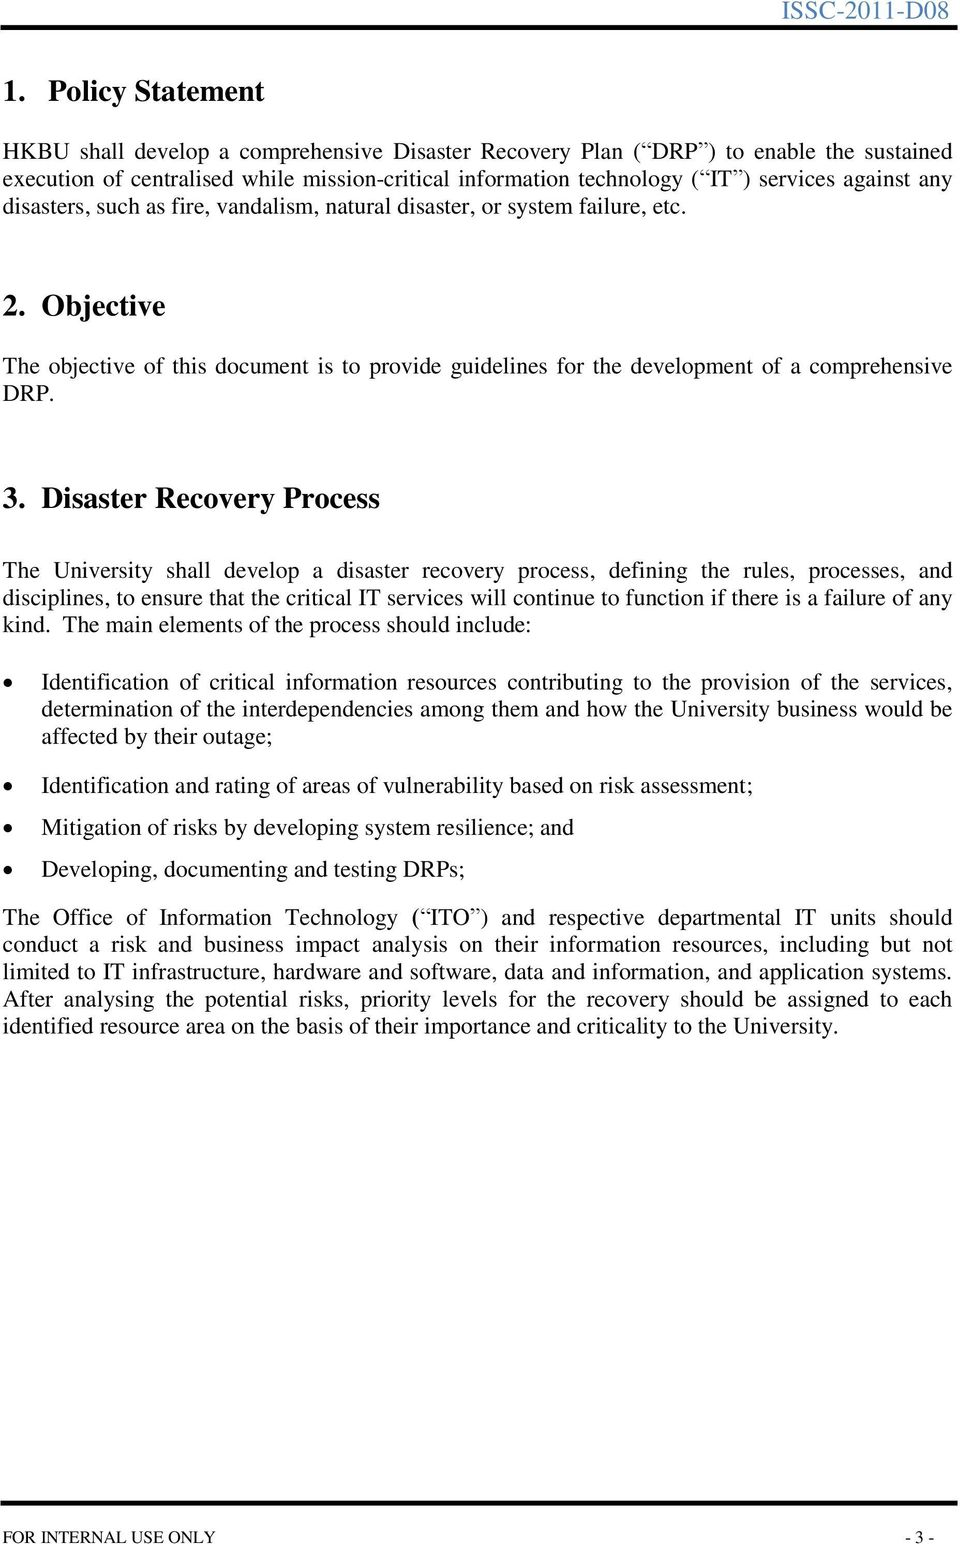 Objective The objective of this document is to provide guidelines for the development of a comprehensive DRP. 3.